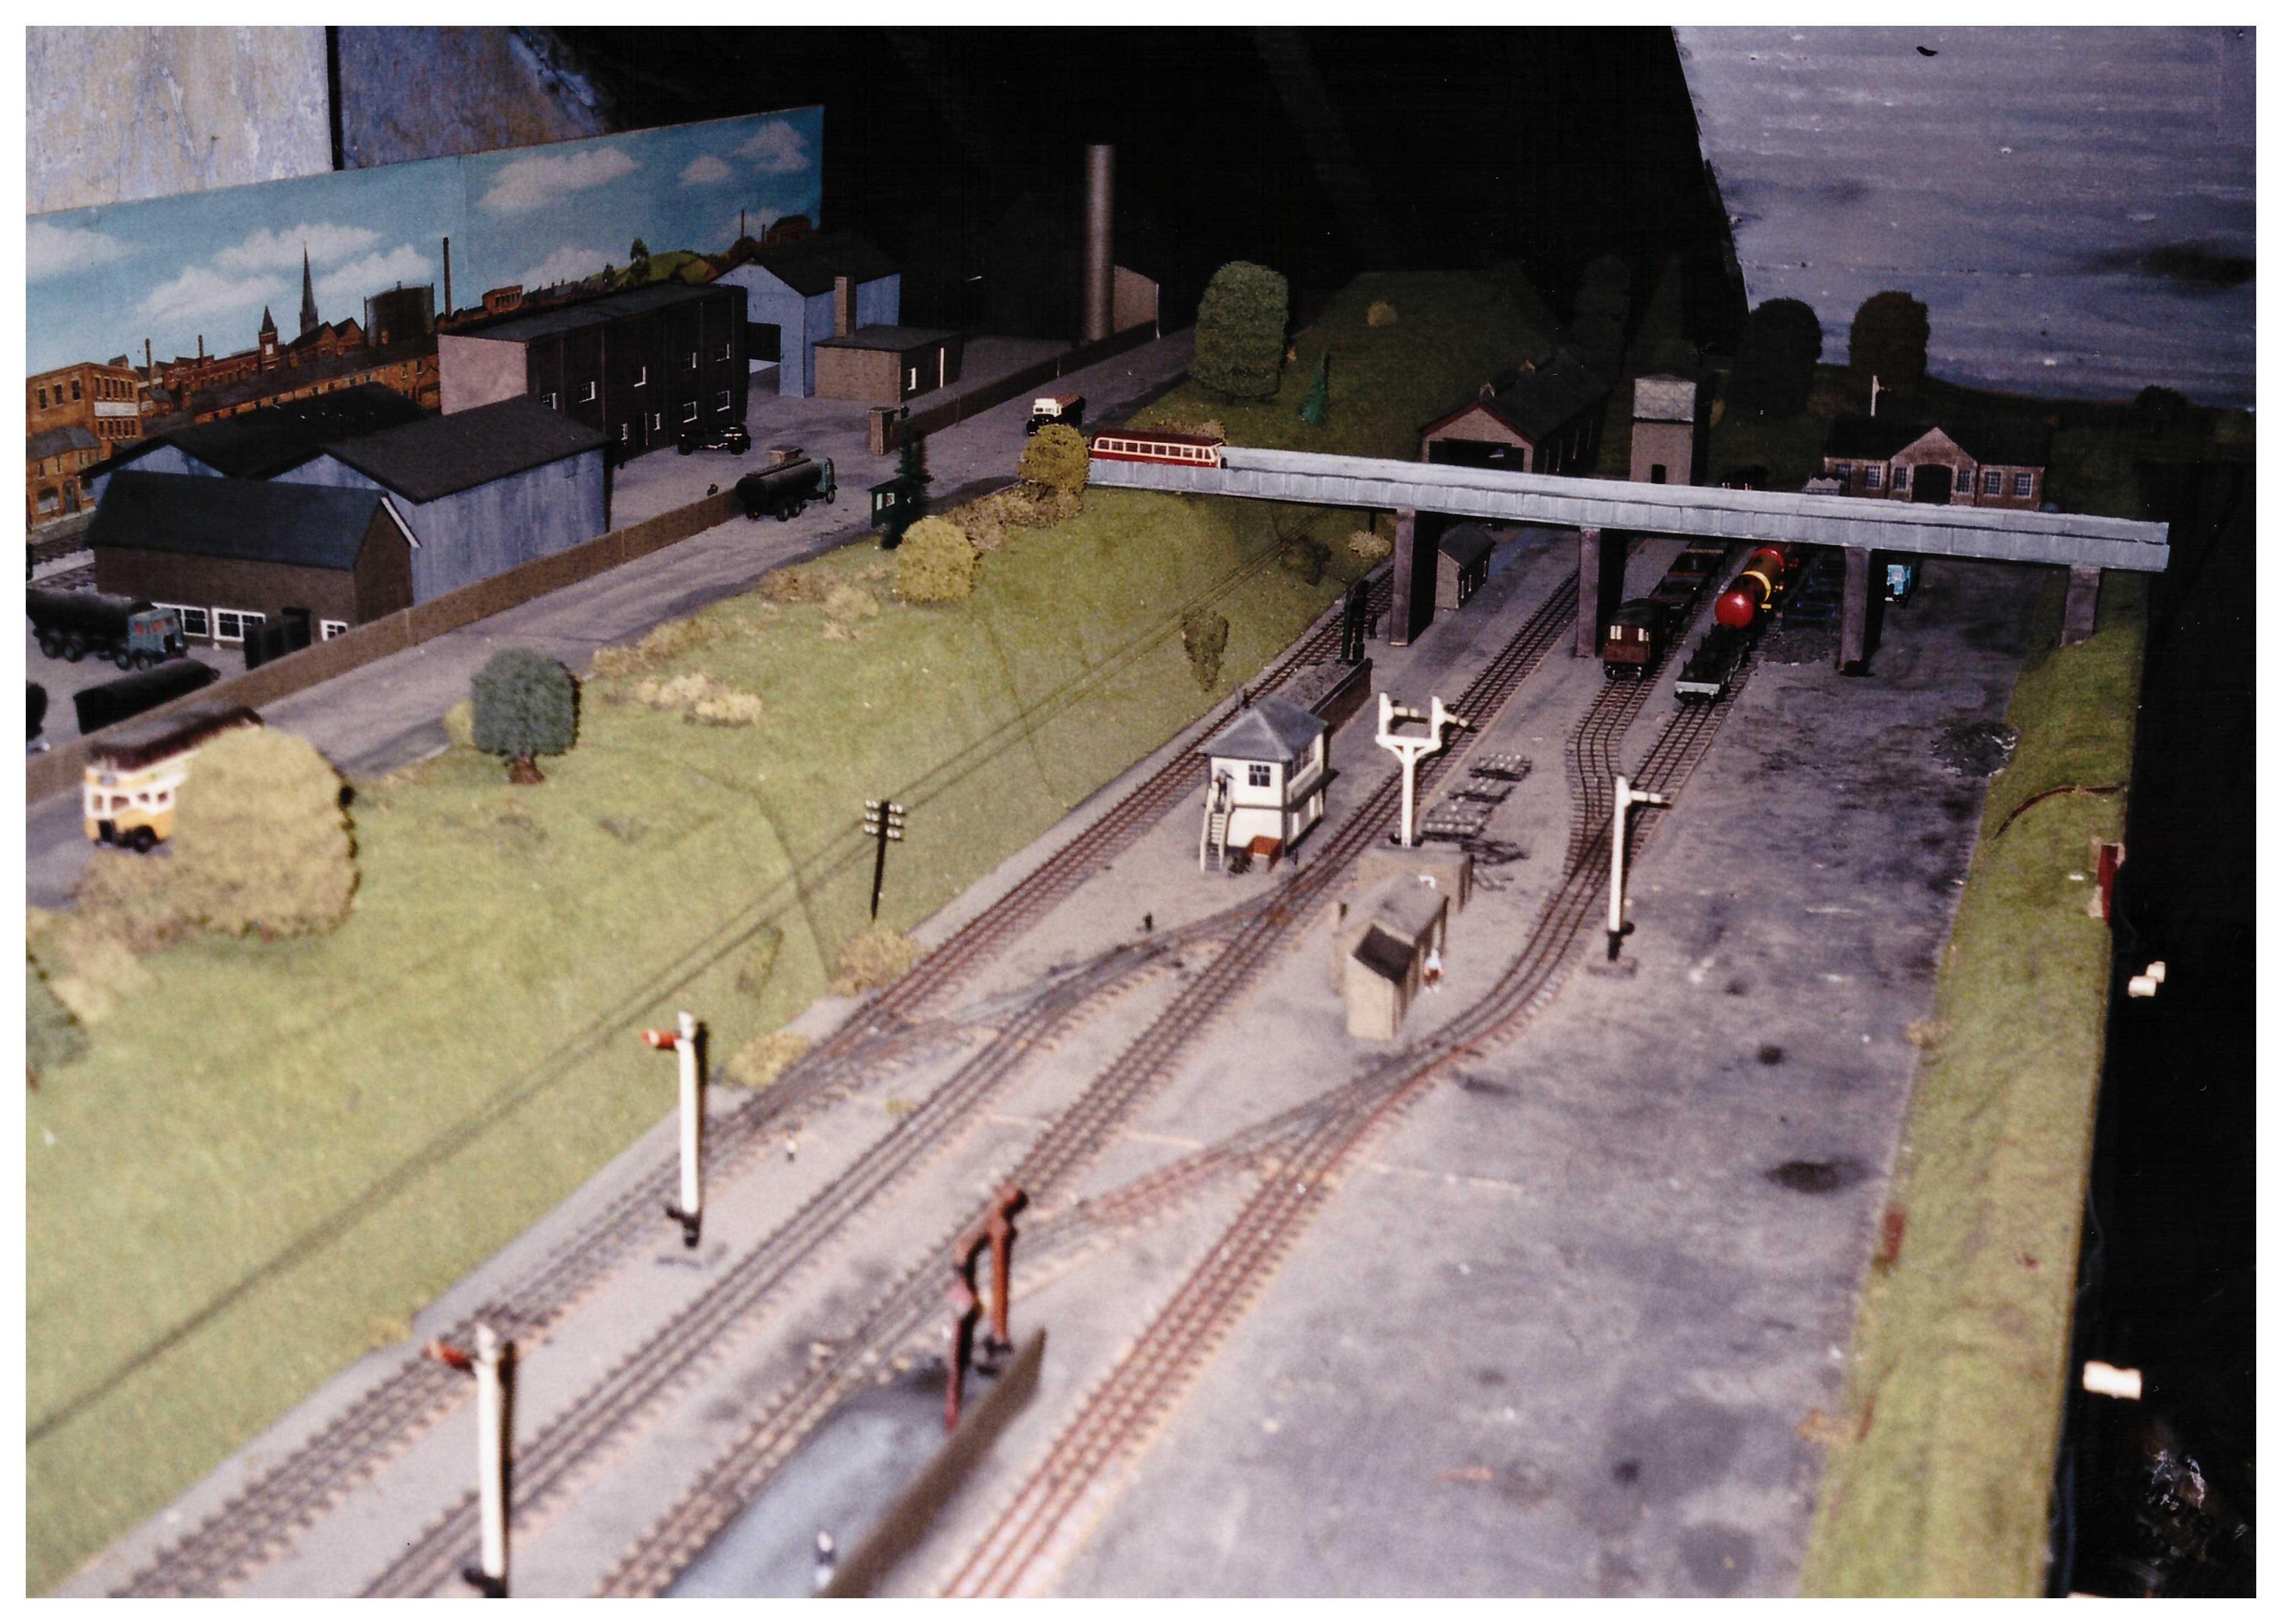 Road overbridge with engineering works above